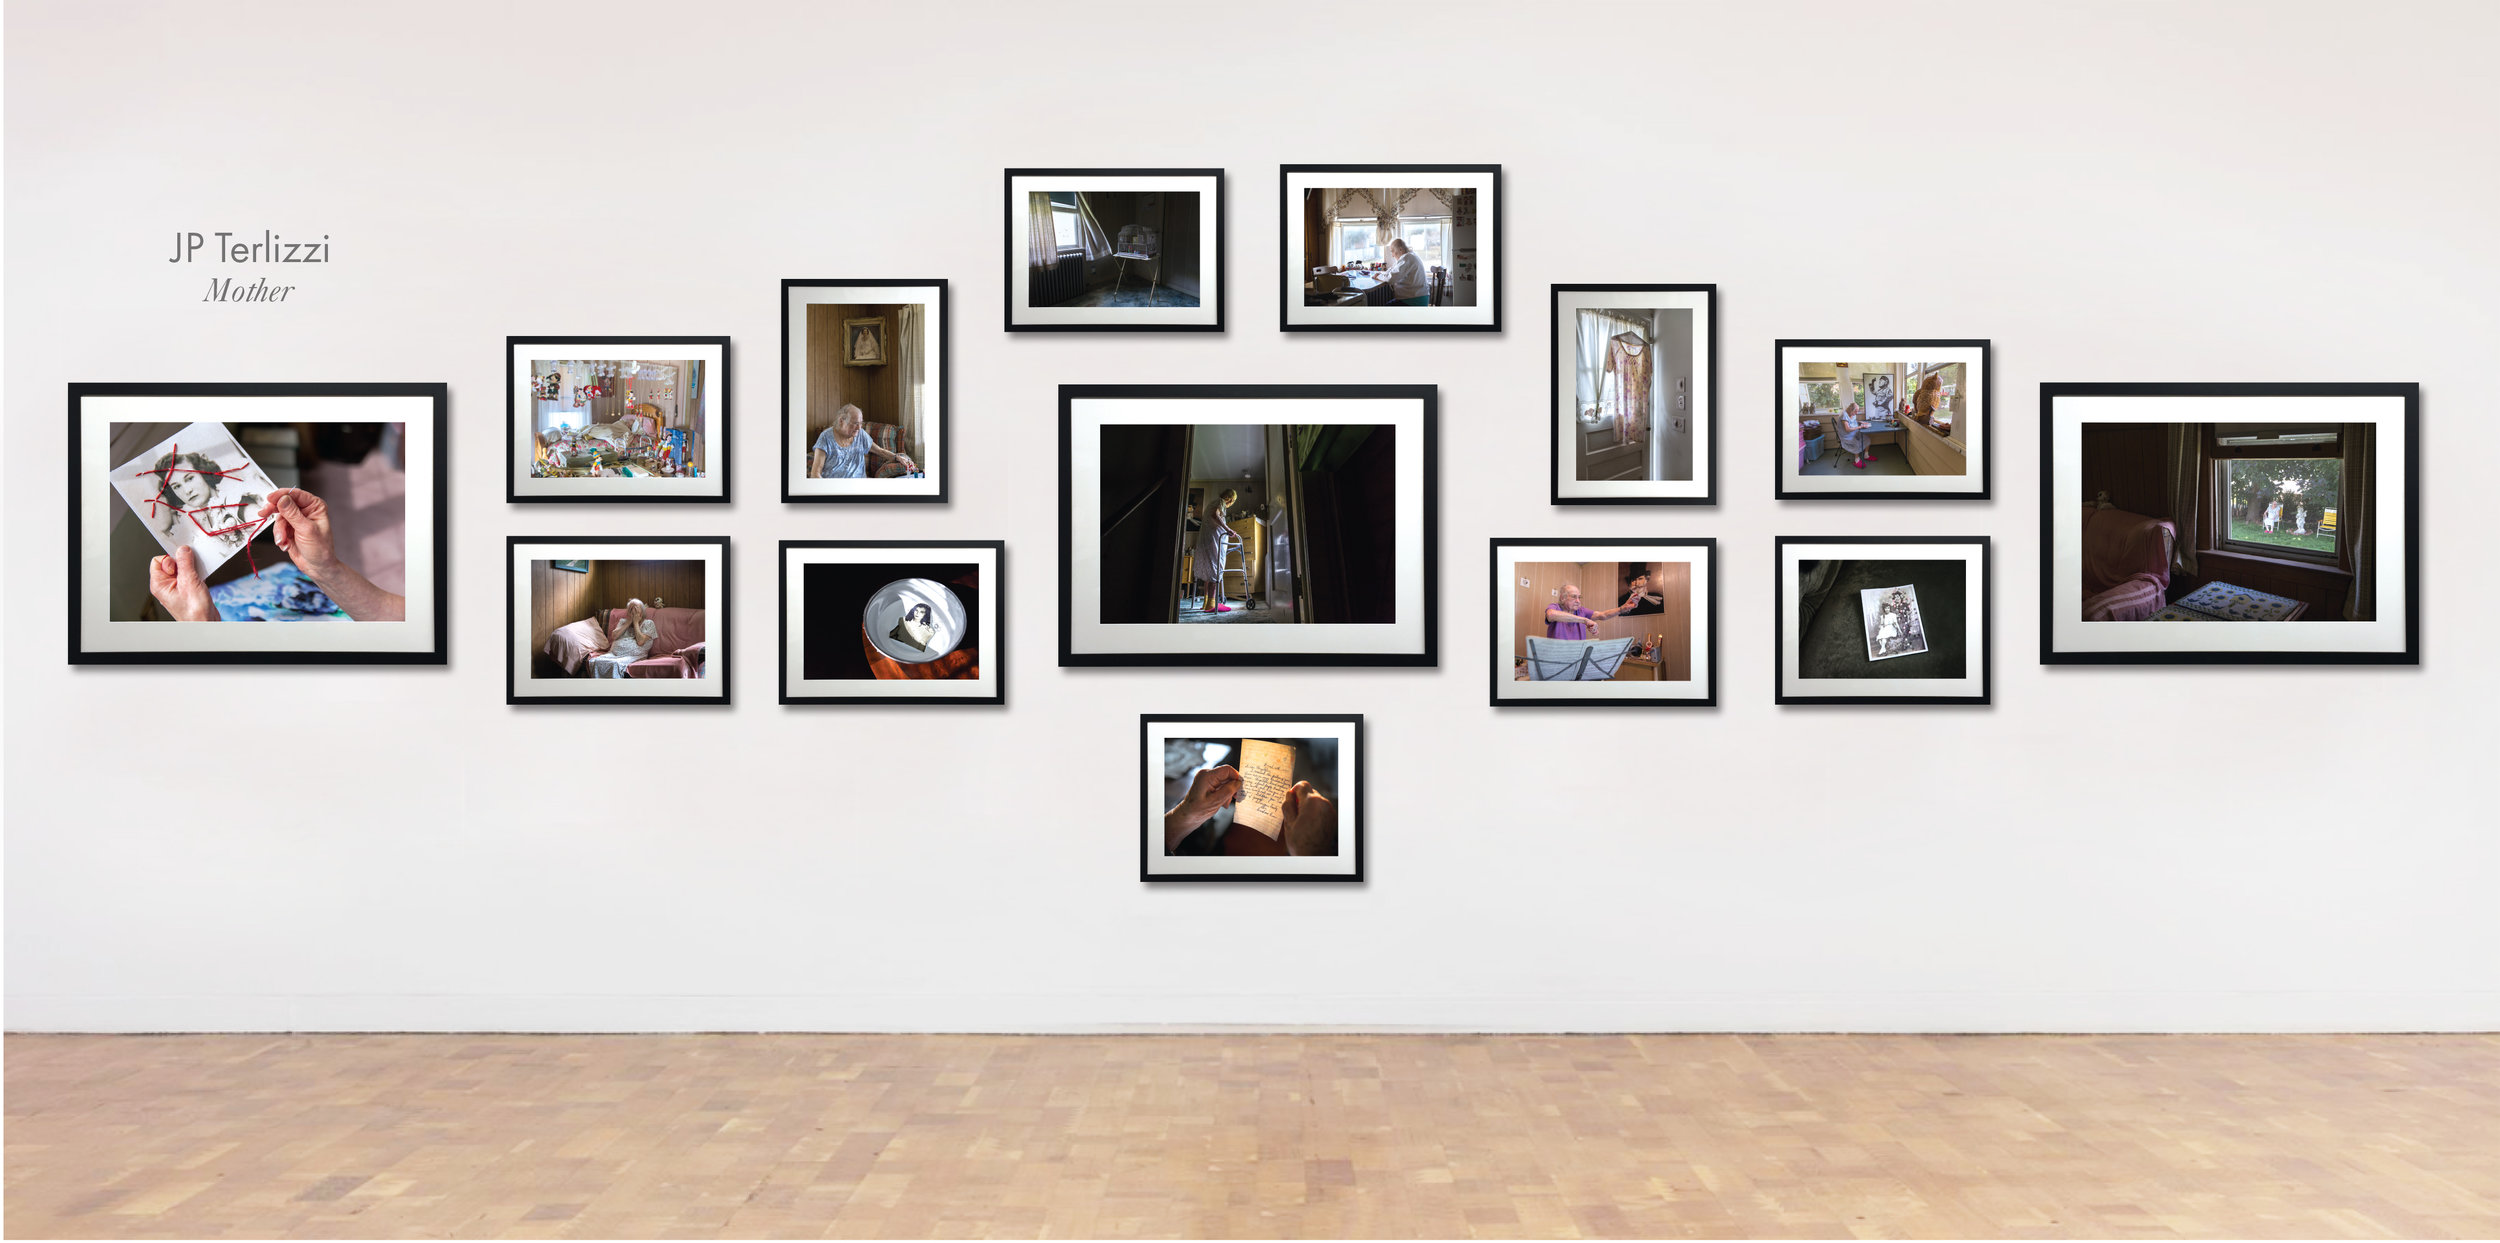 Exhibition Details:  Chromogenic prints matted and framed in black wood, 38 x 28 inches, 23 x 17 inches